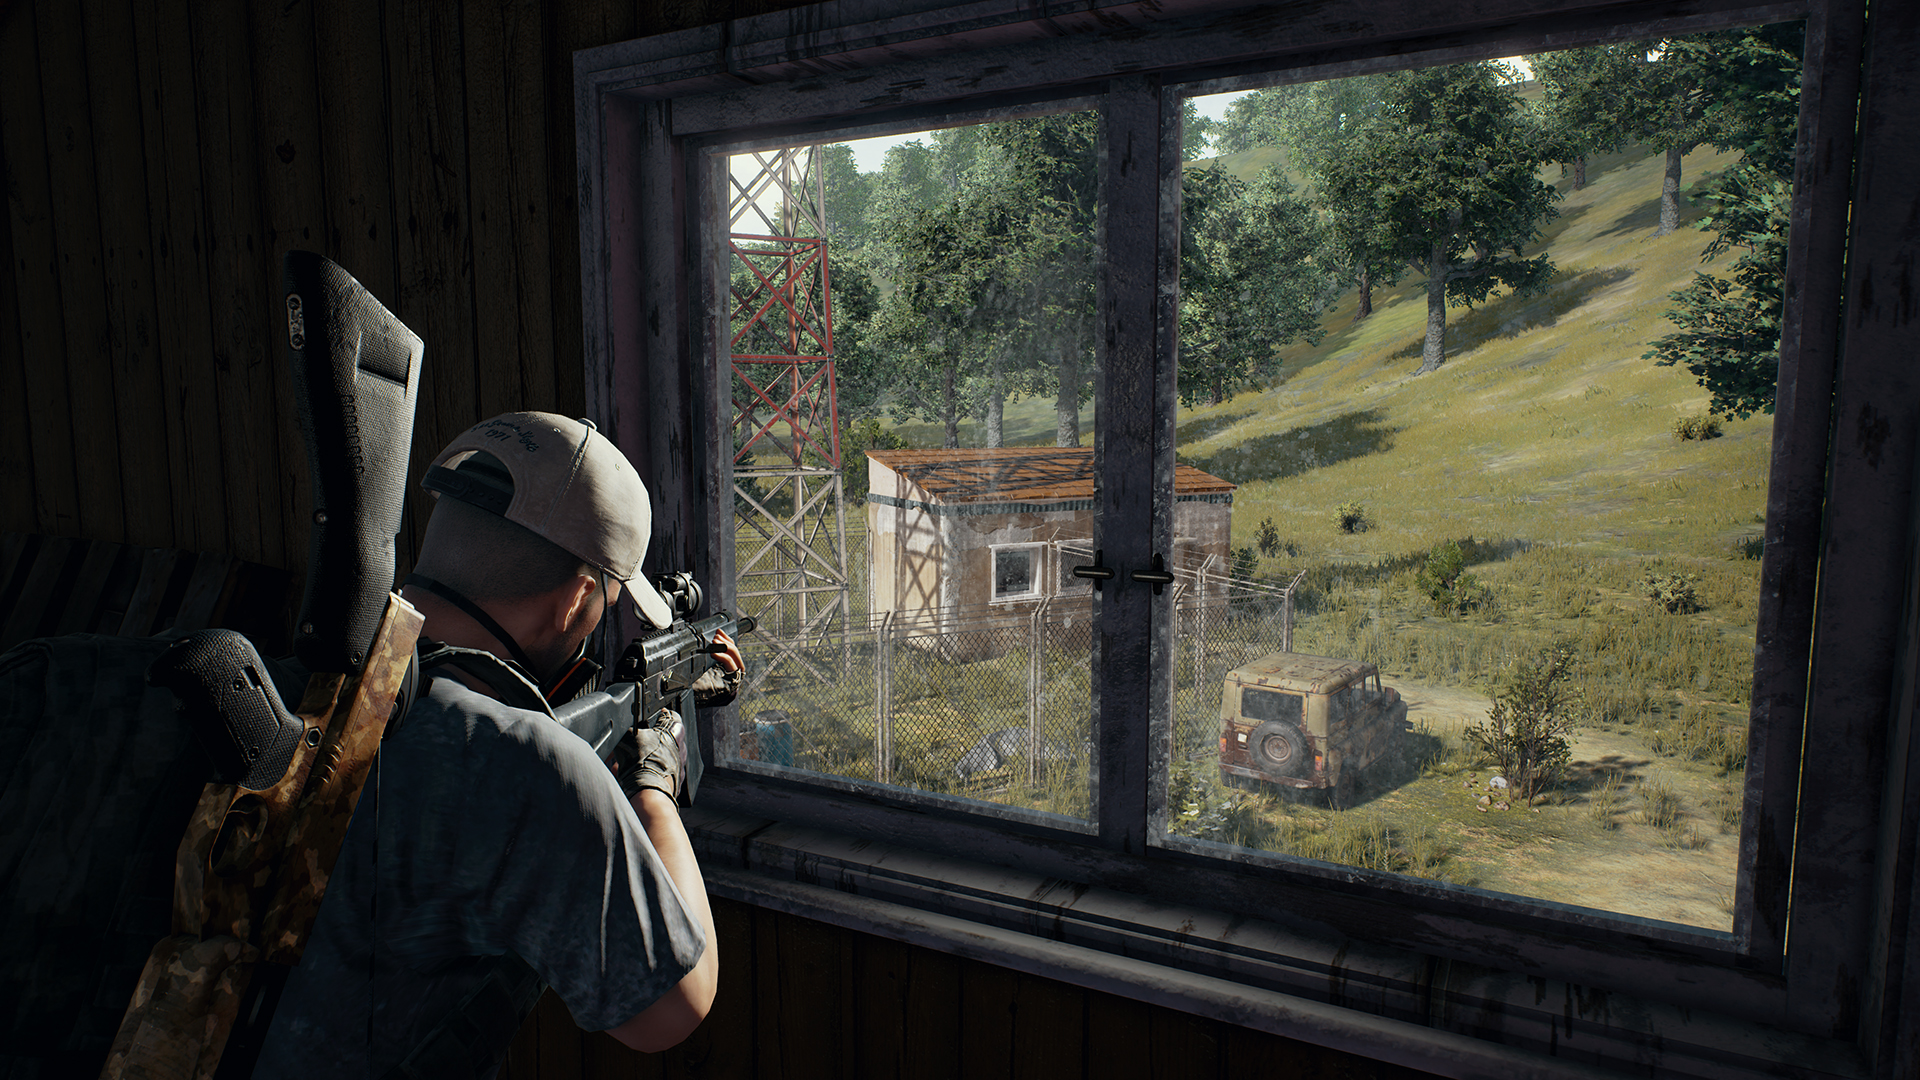 Twitch Plays Pubg And Has Already Managed To Finish Third Place In A Game Pc Gamer